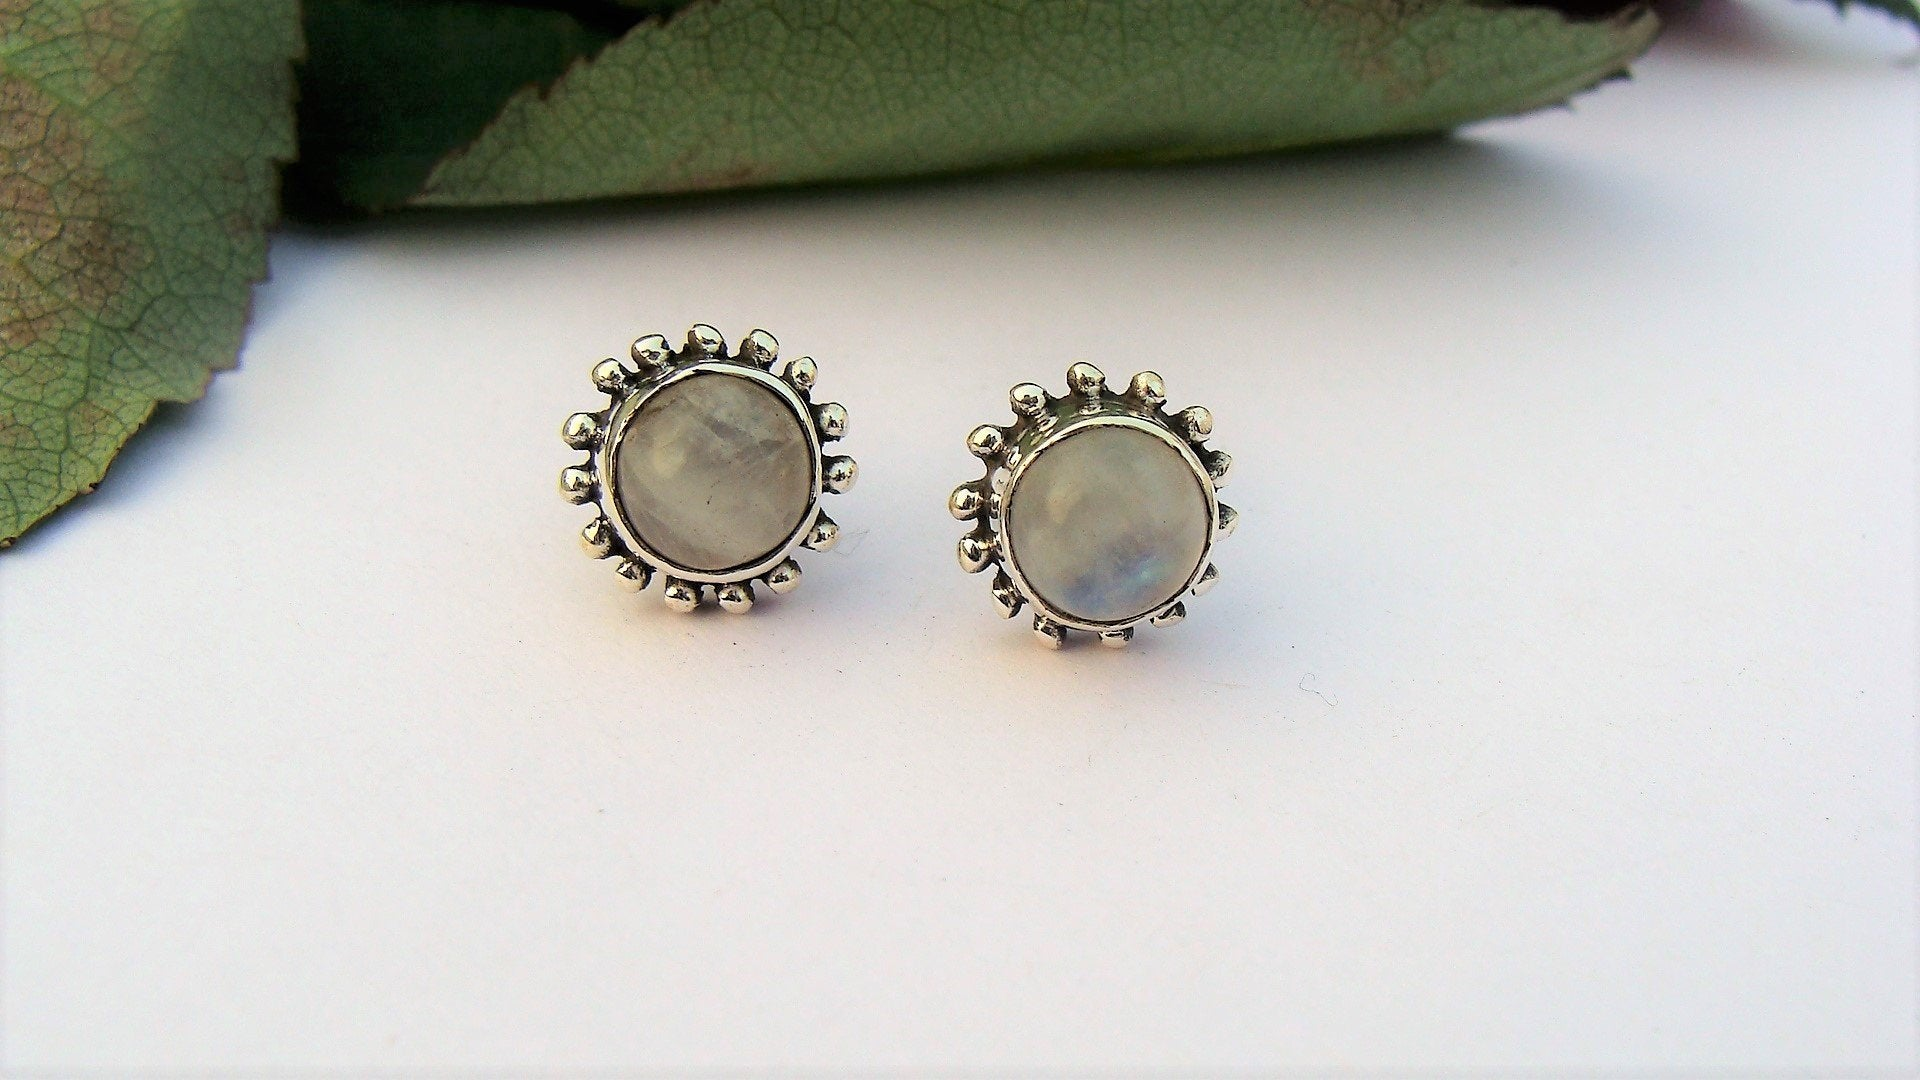 Moonstone Studs, Moonstone Gemstone Sterling Silver Stud Earrings, Natural Moonstone Studs, Moonstone Jewelry AE-1055